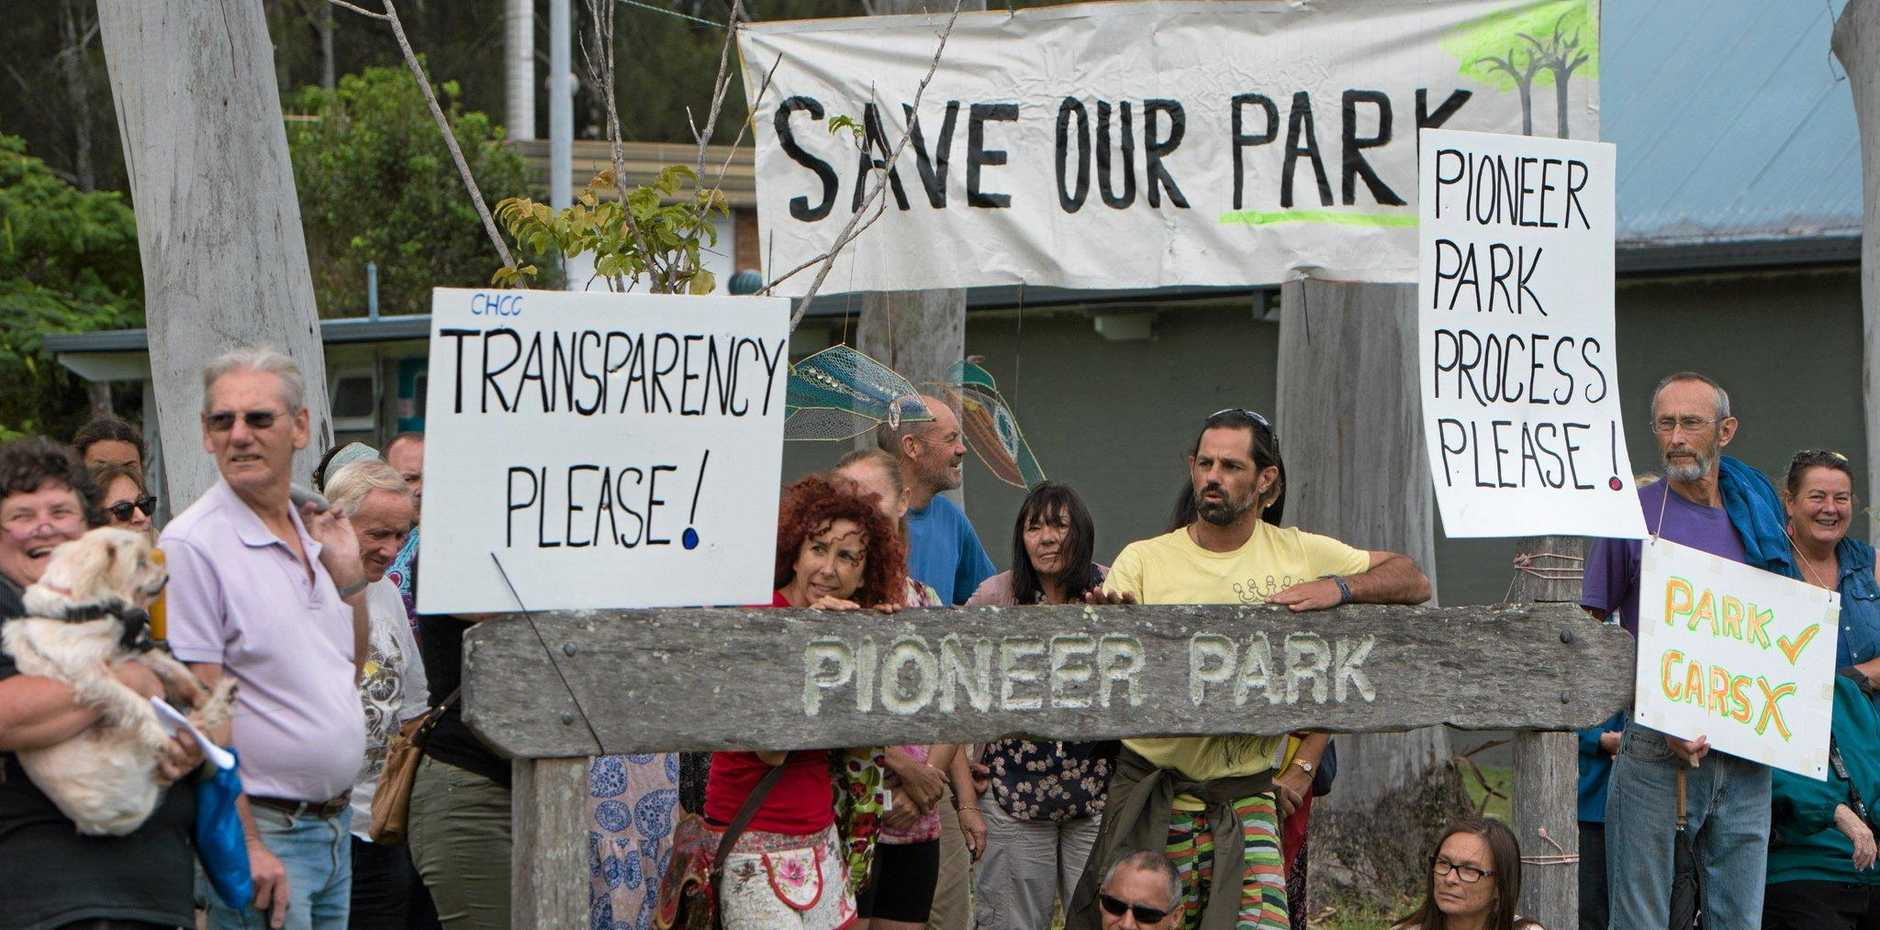 Locals gathered in Pioneer Park this afternoon for a peaceful protest picnic to take a stand against a proposed road to be developed through the park.